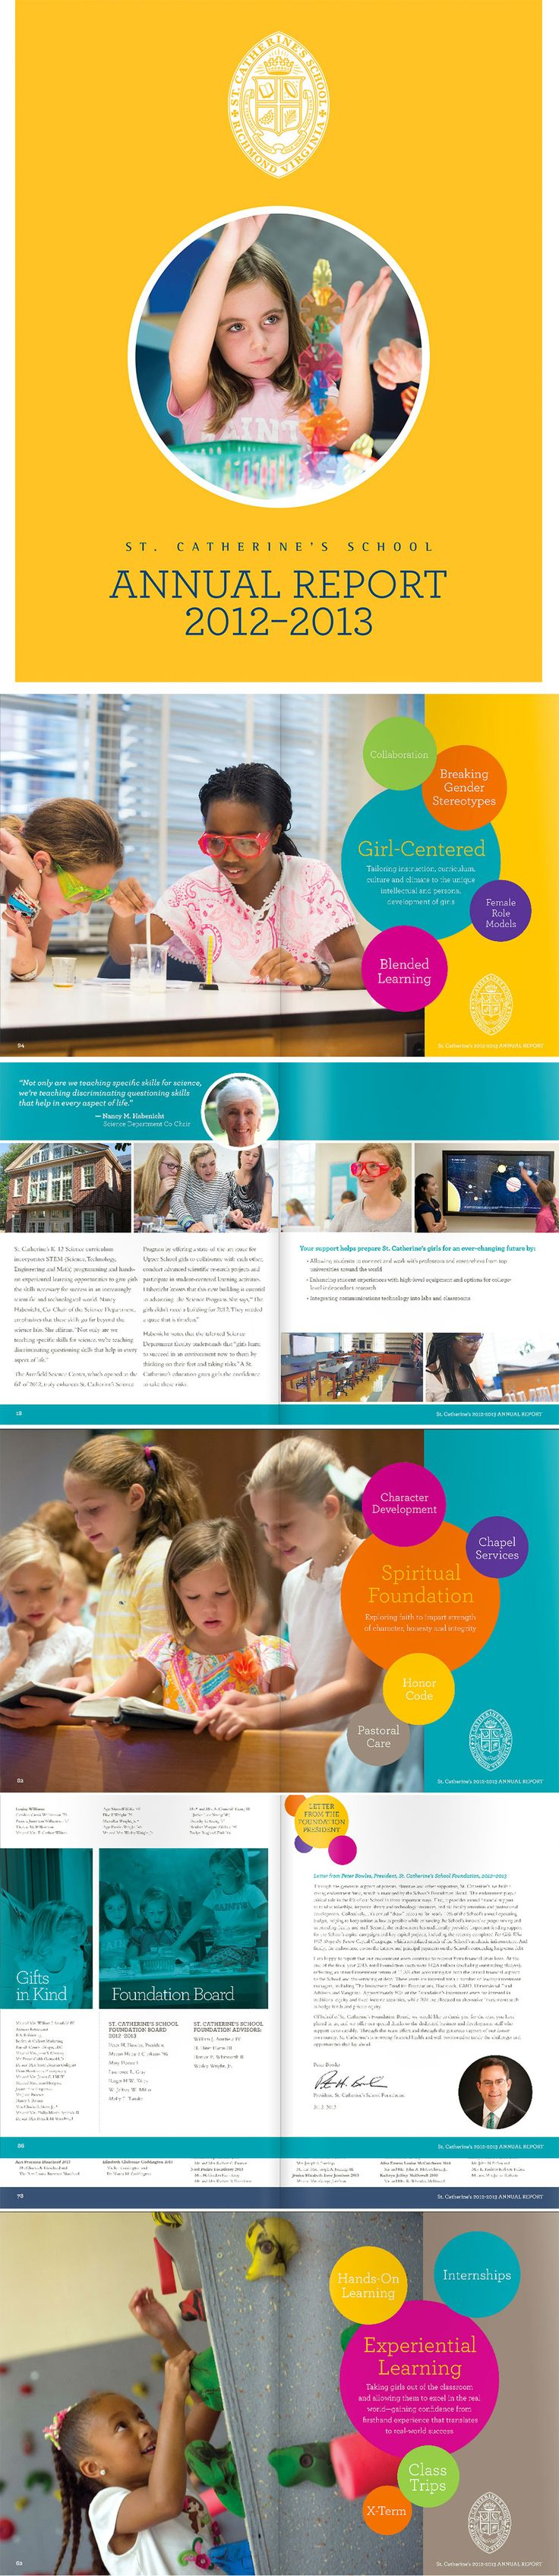 Annual Report design for an all-girl school.